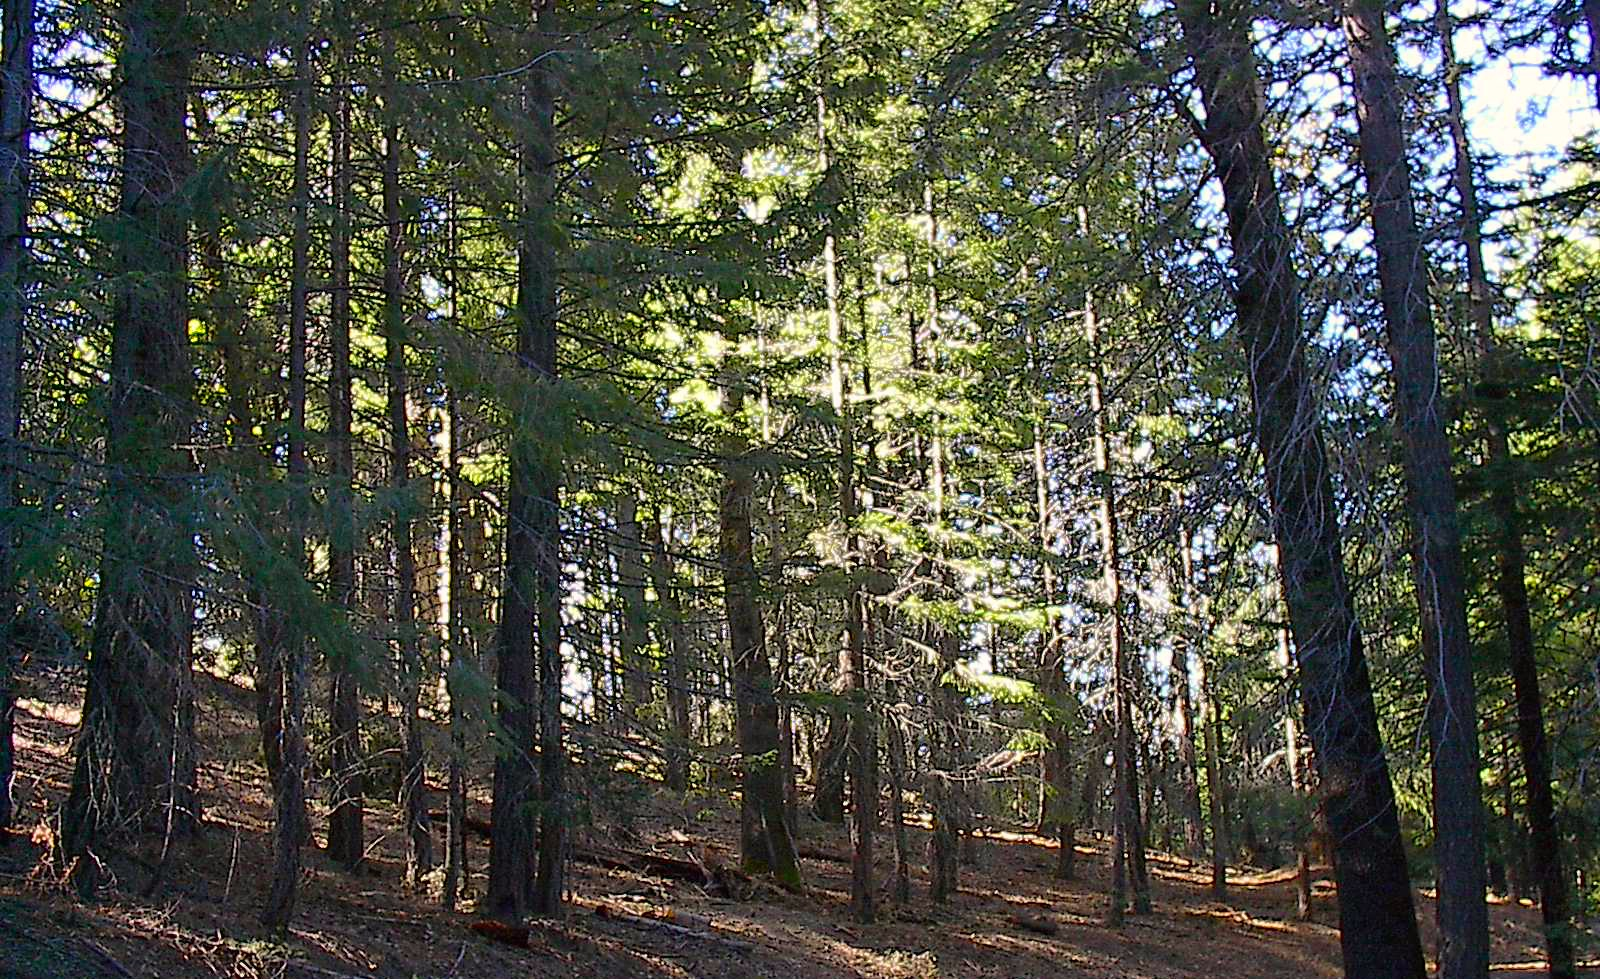 Forestland in Round Valley after selective small tree thinning by FRG member Dane Downing. Image credit: Dane Downing